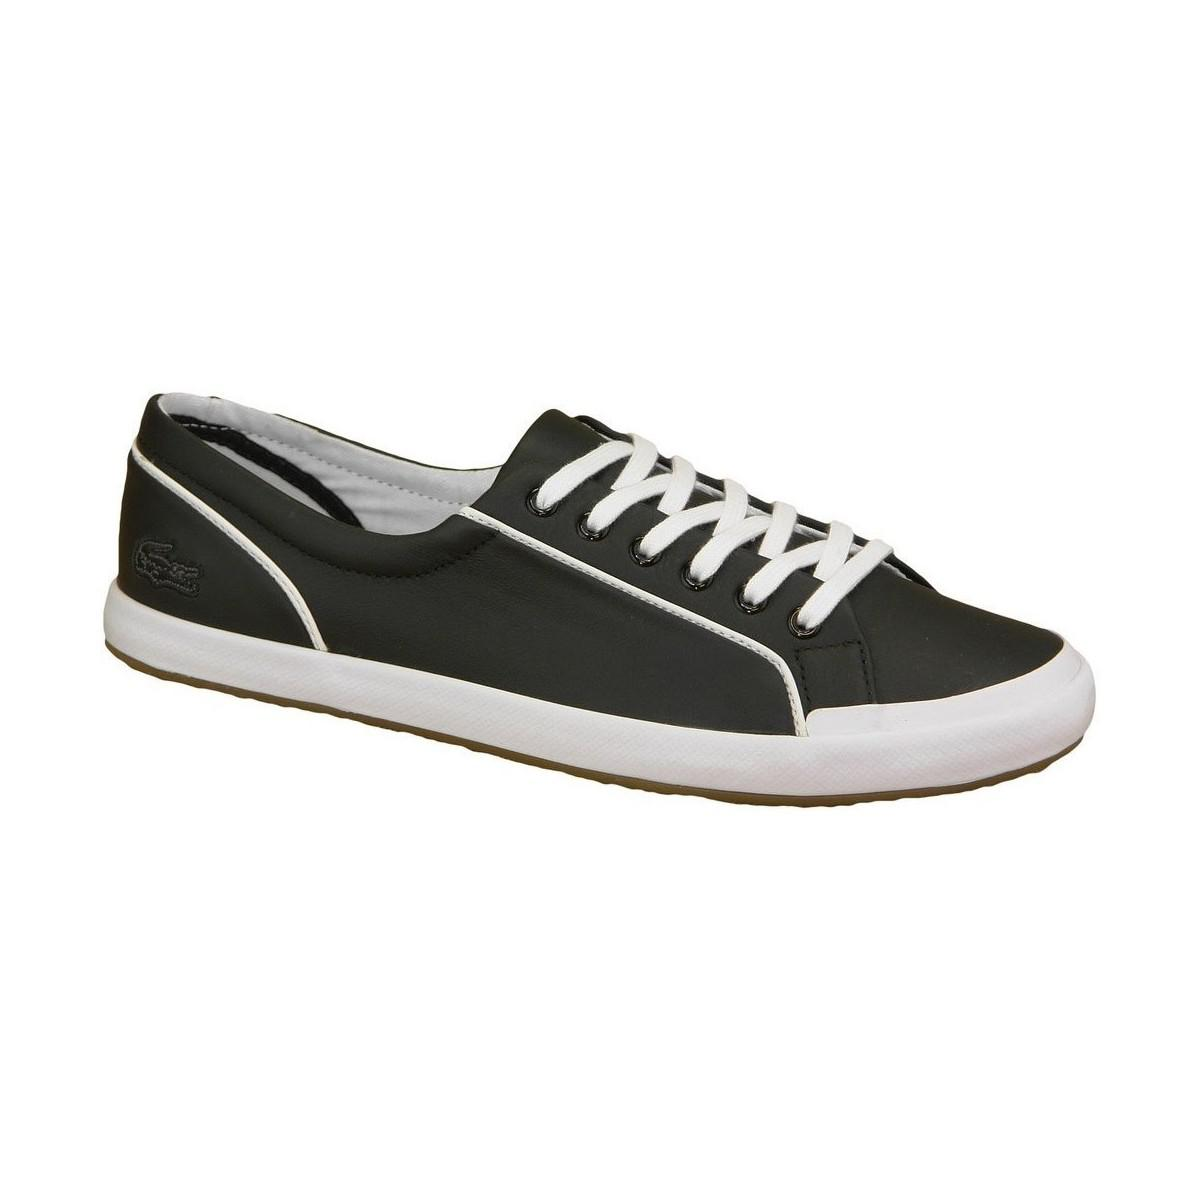 98f3c648856c Lacoste Lancelle Lace 6 Eye Women s Shoes (trainers) In Black in ...